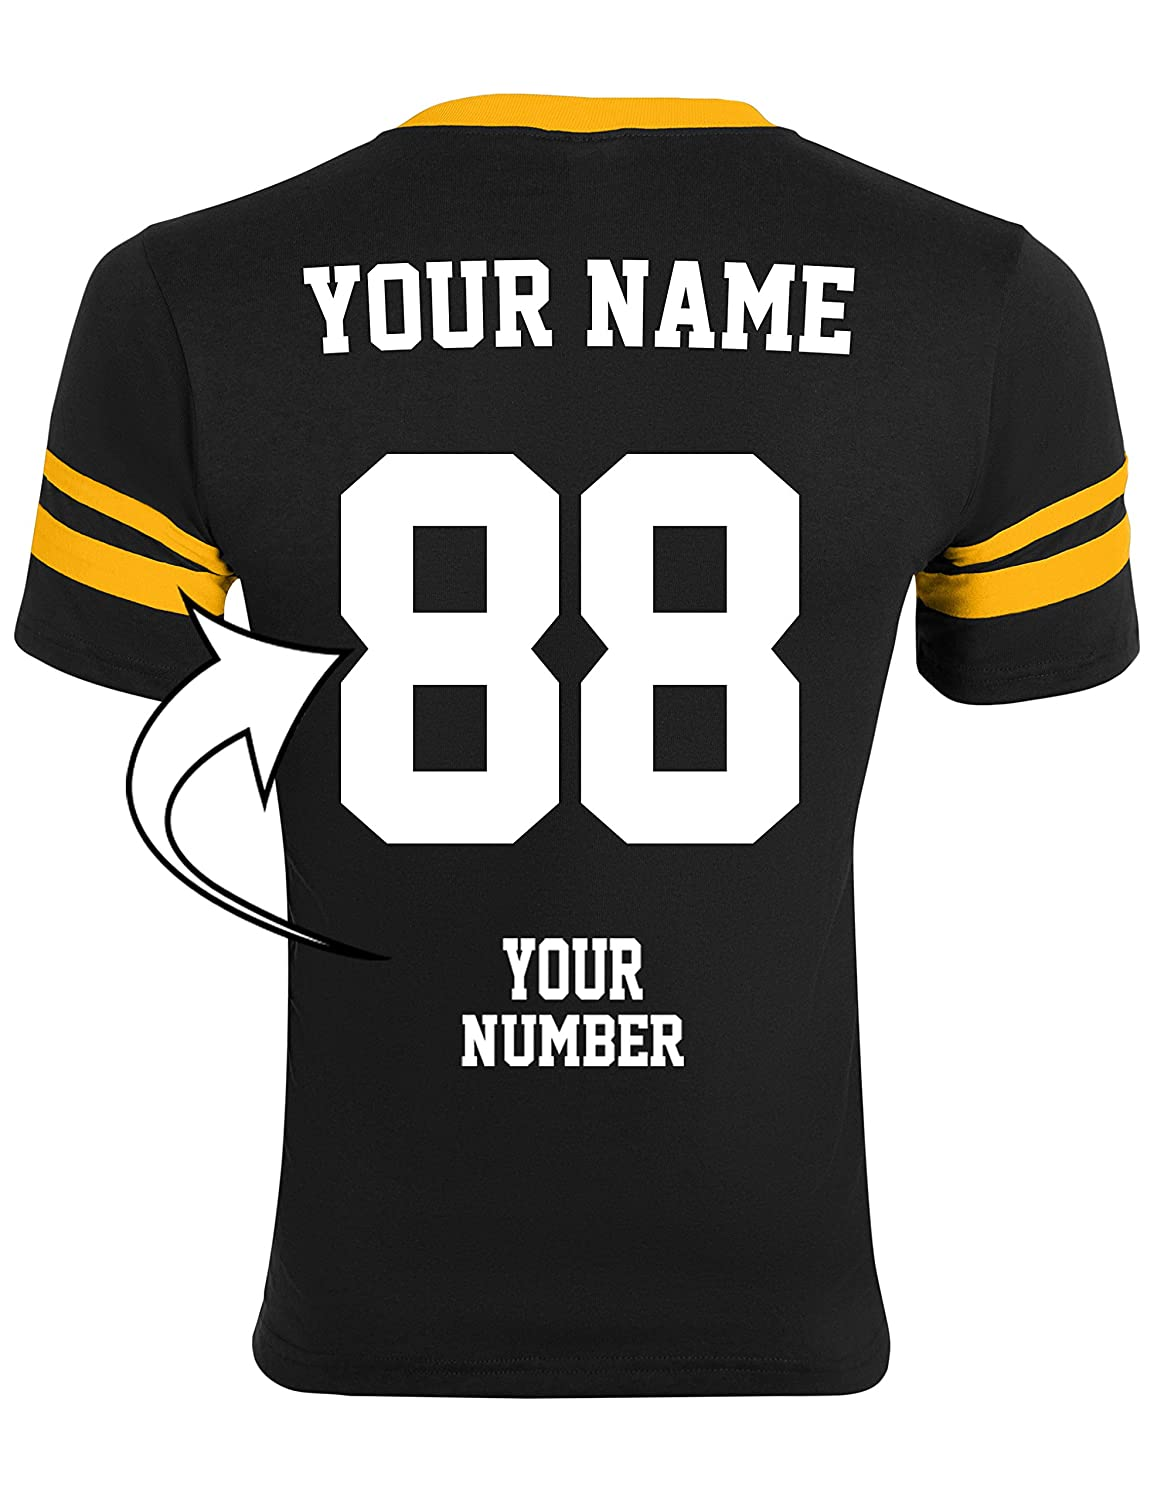 3c019be8d922e Custom Made Jerseys - Make Your OWN Jersey Shirts - Personalized Team  Uniforms